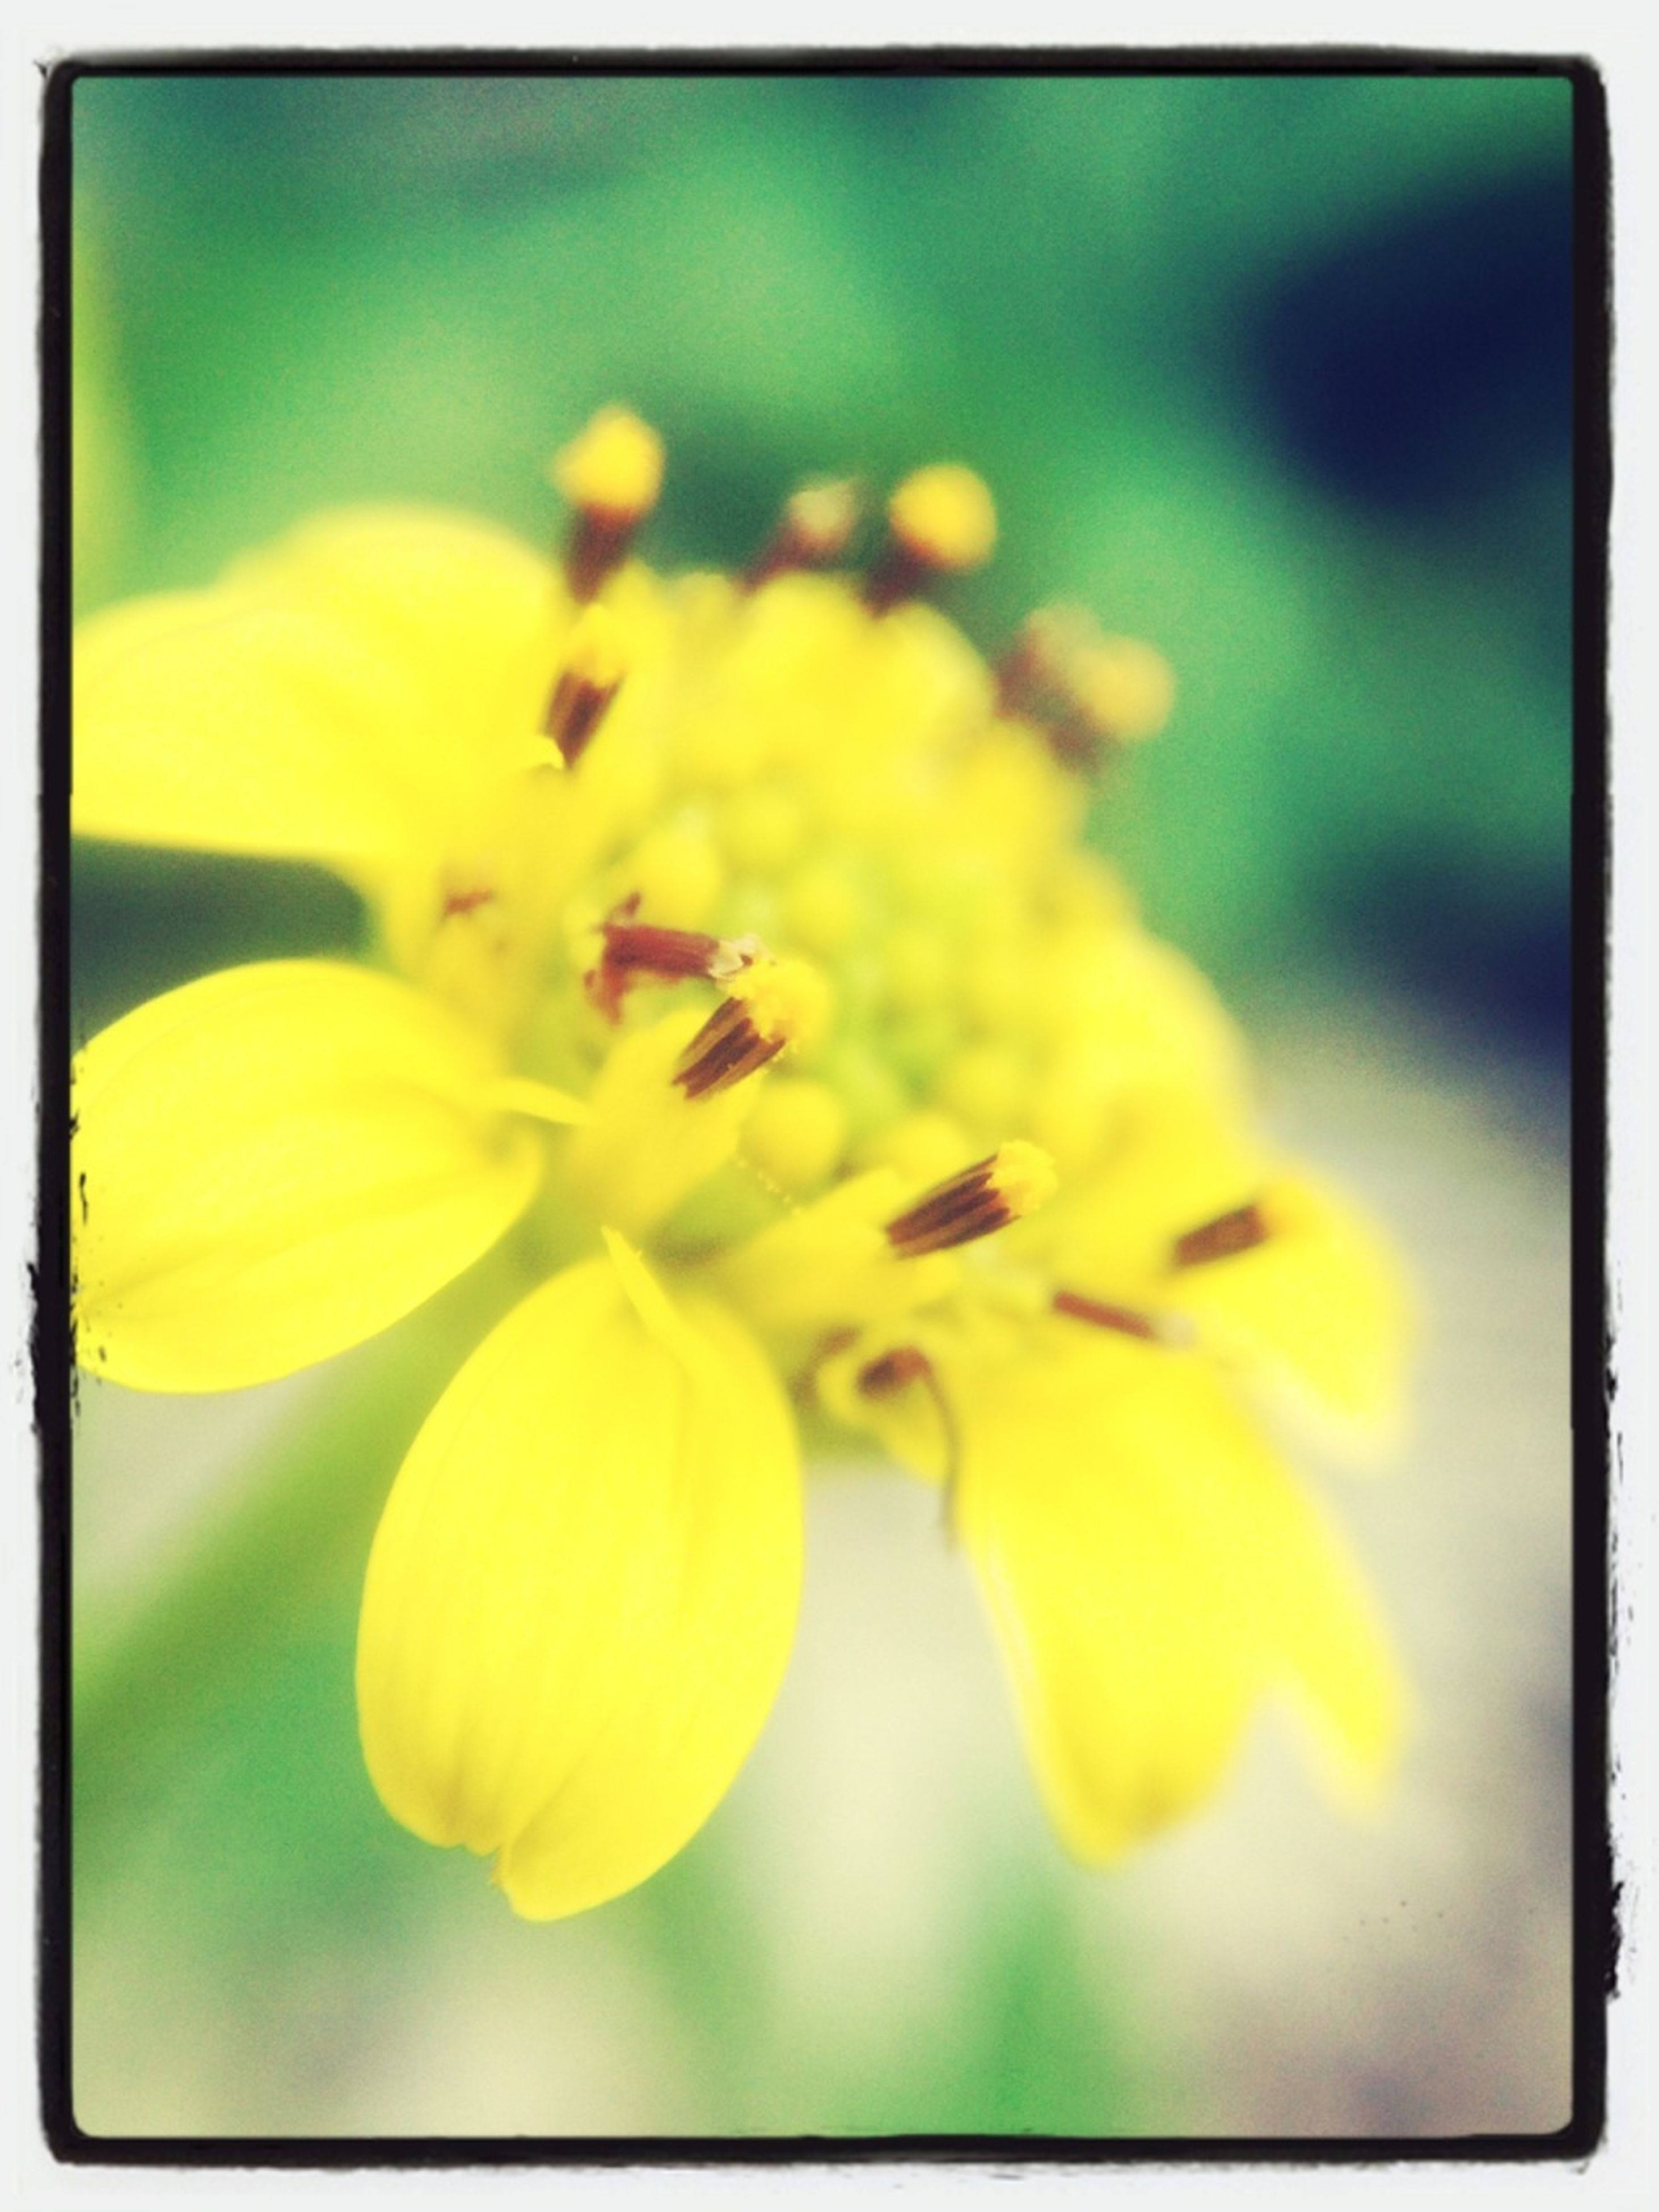 flower, freshness, petal, yellow, fragility, flower head, transfer print, growth, beauty in nature, close-up, focus on foreground, nature, auto post production filter, blooming, pollen, selective focus, in bloom, blossom, plant, stamen